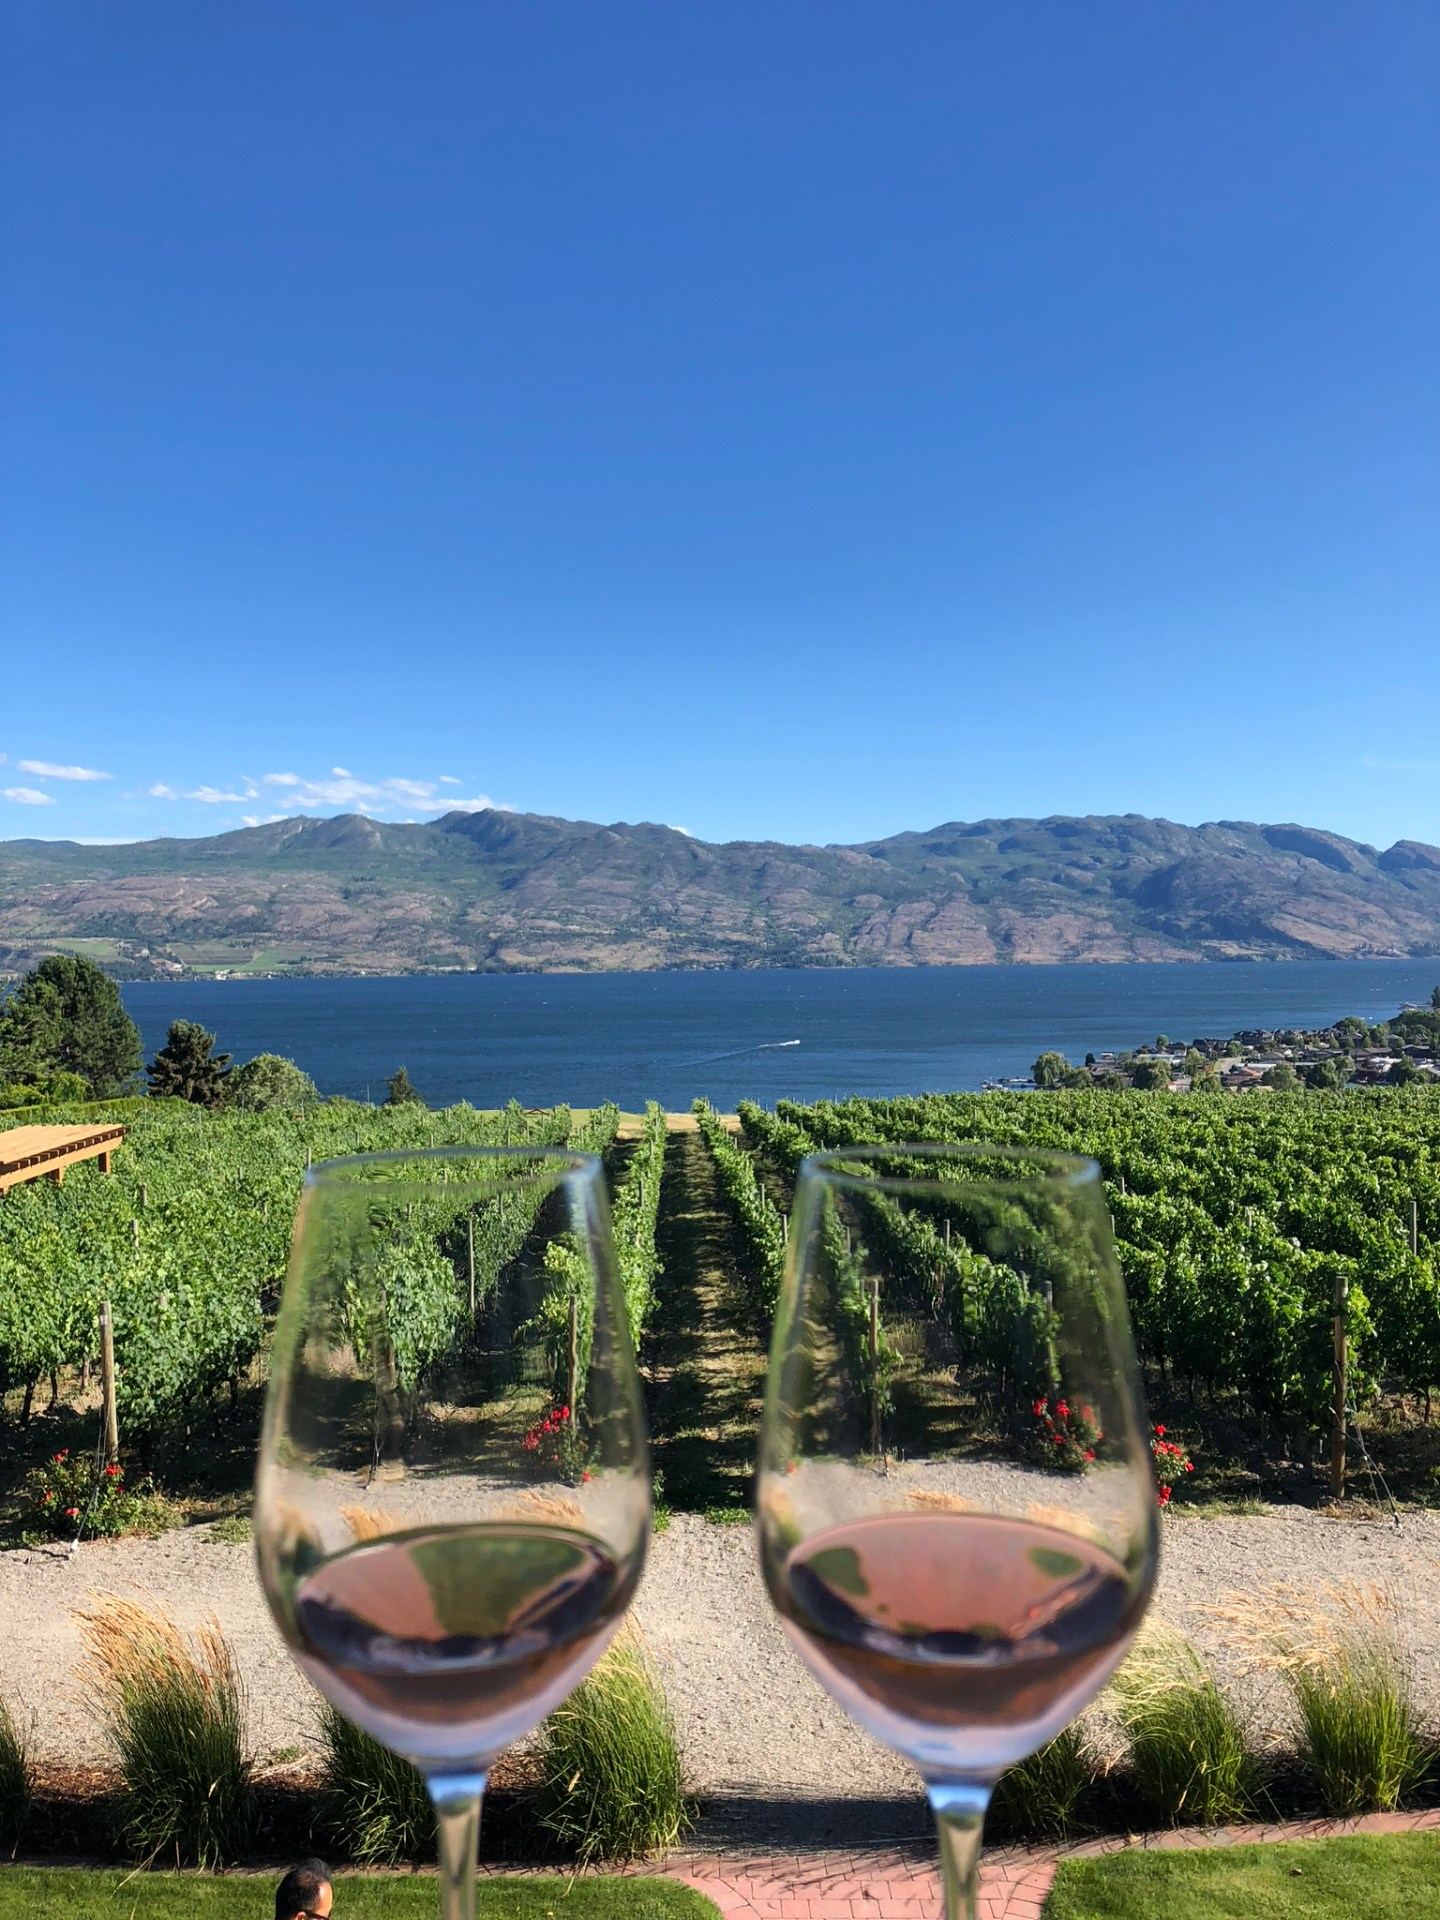 Kelowna: Back to the Okanagan Valley